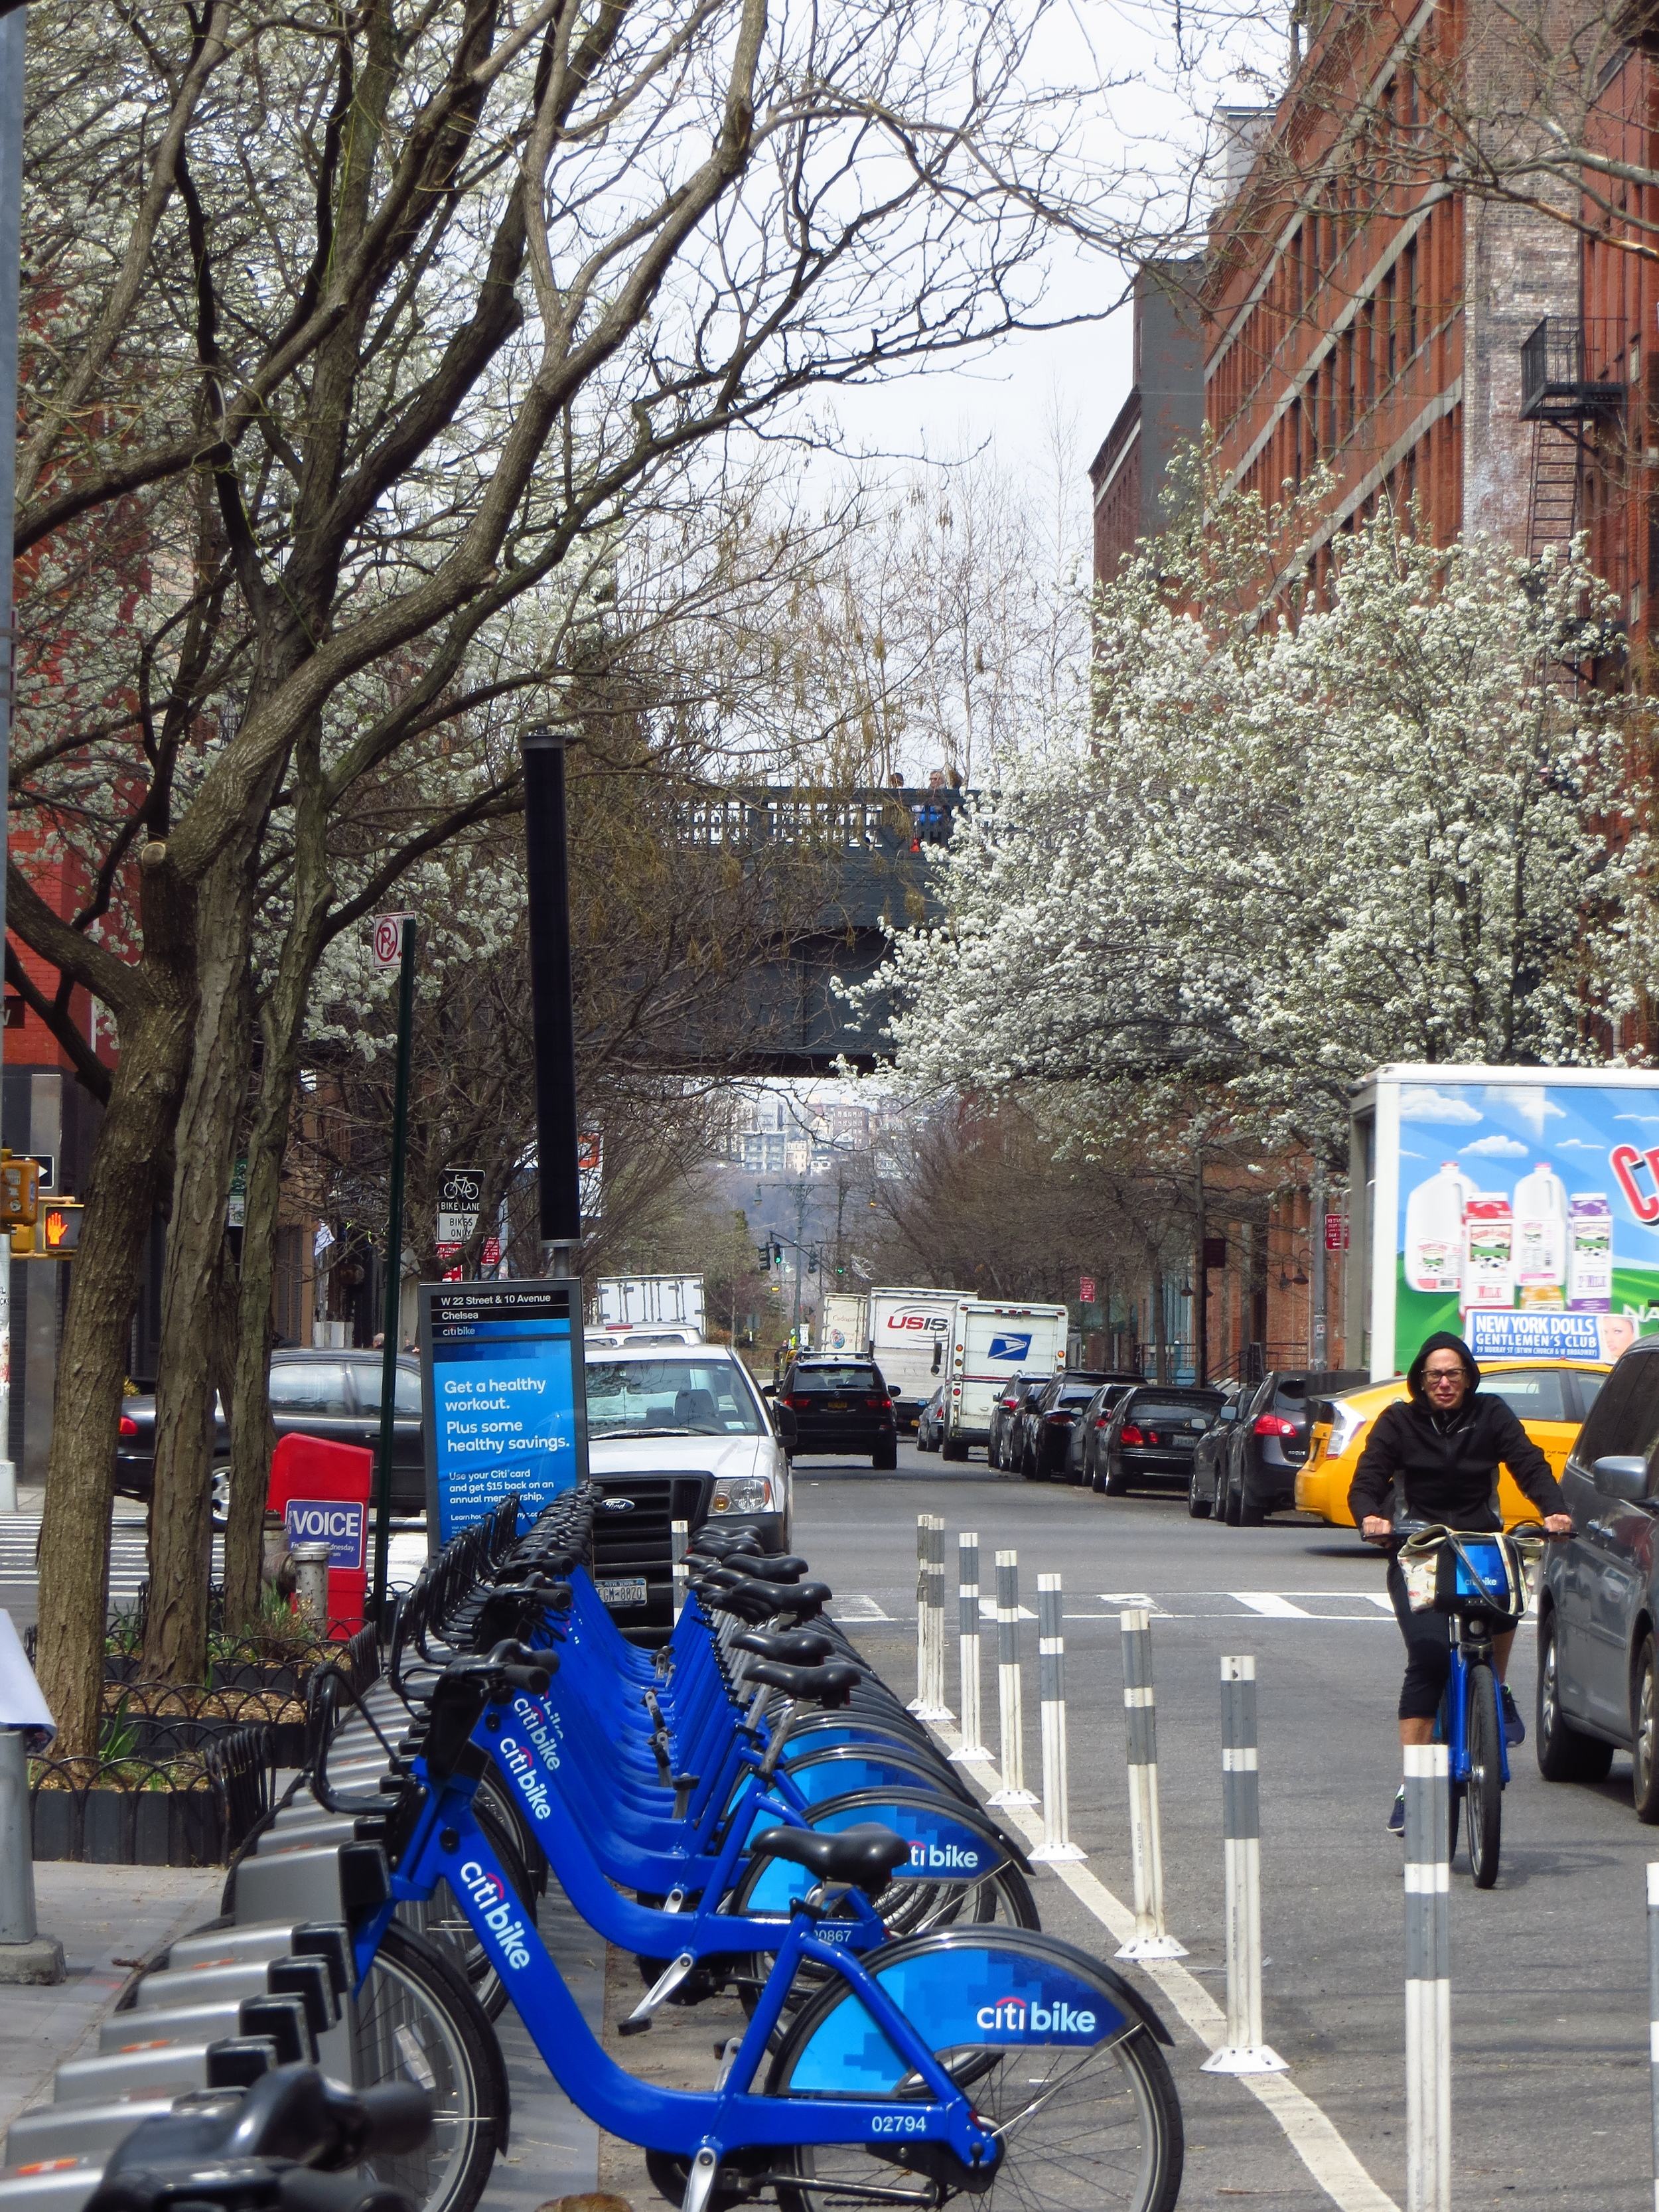 View of Highline in Chelsea #2 (w/Citi Bikes)